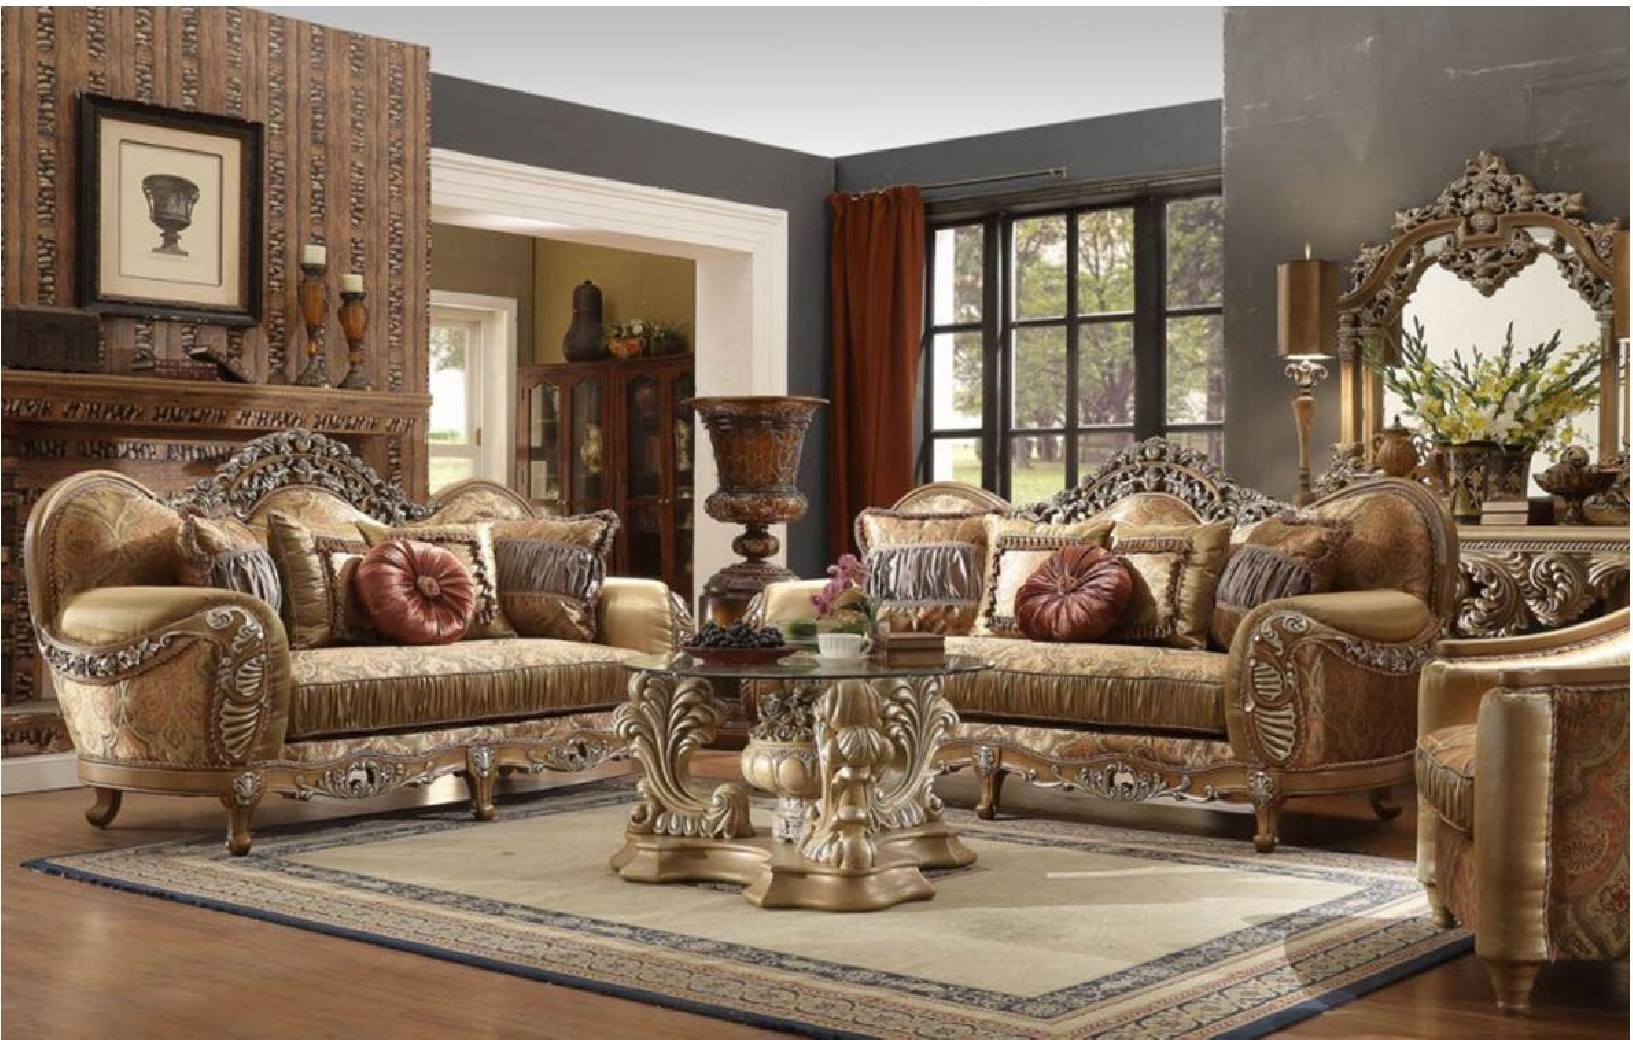 Hd 622 Homey Design Upholstery Living Room Set Victorian European